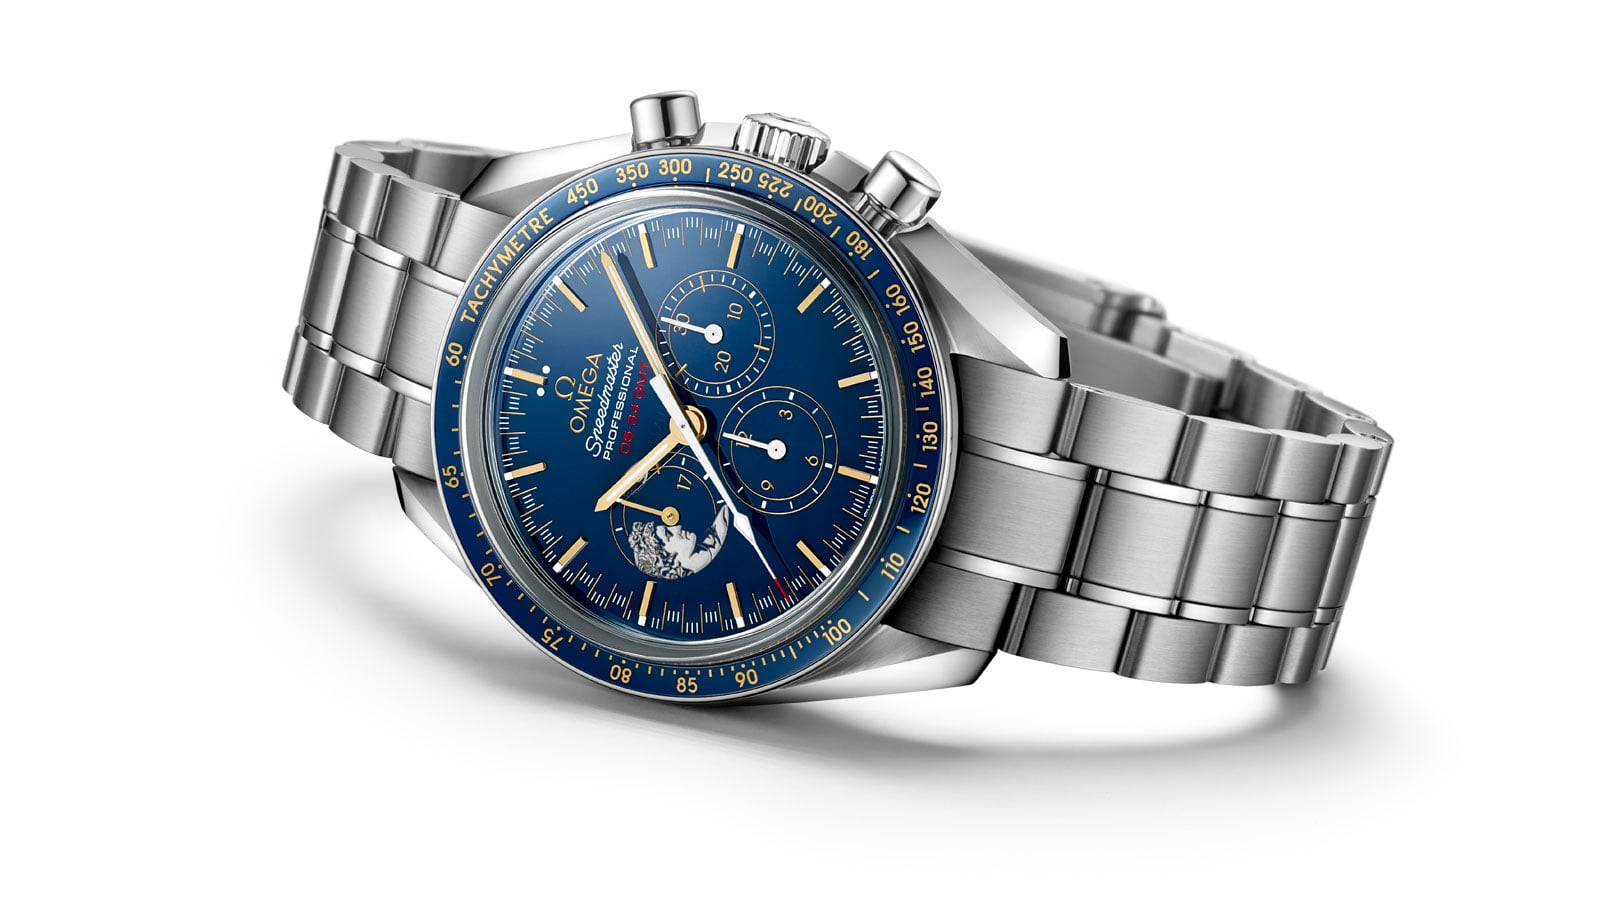 AS EDIÇÕES LIMITADAS DO SPEEDMASTER APOLLO 17 45TH ANNIVERSARY